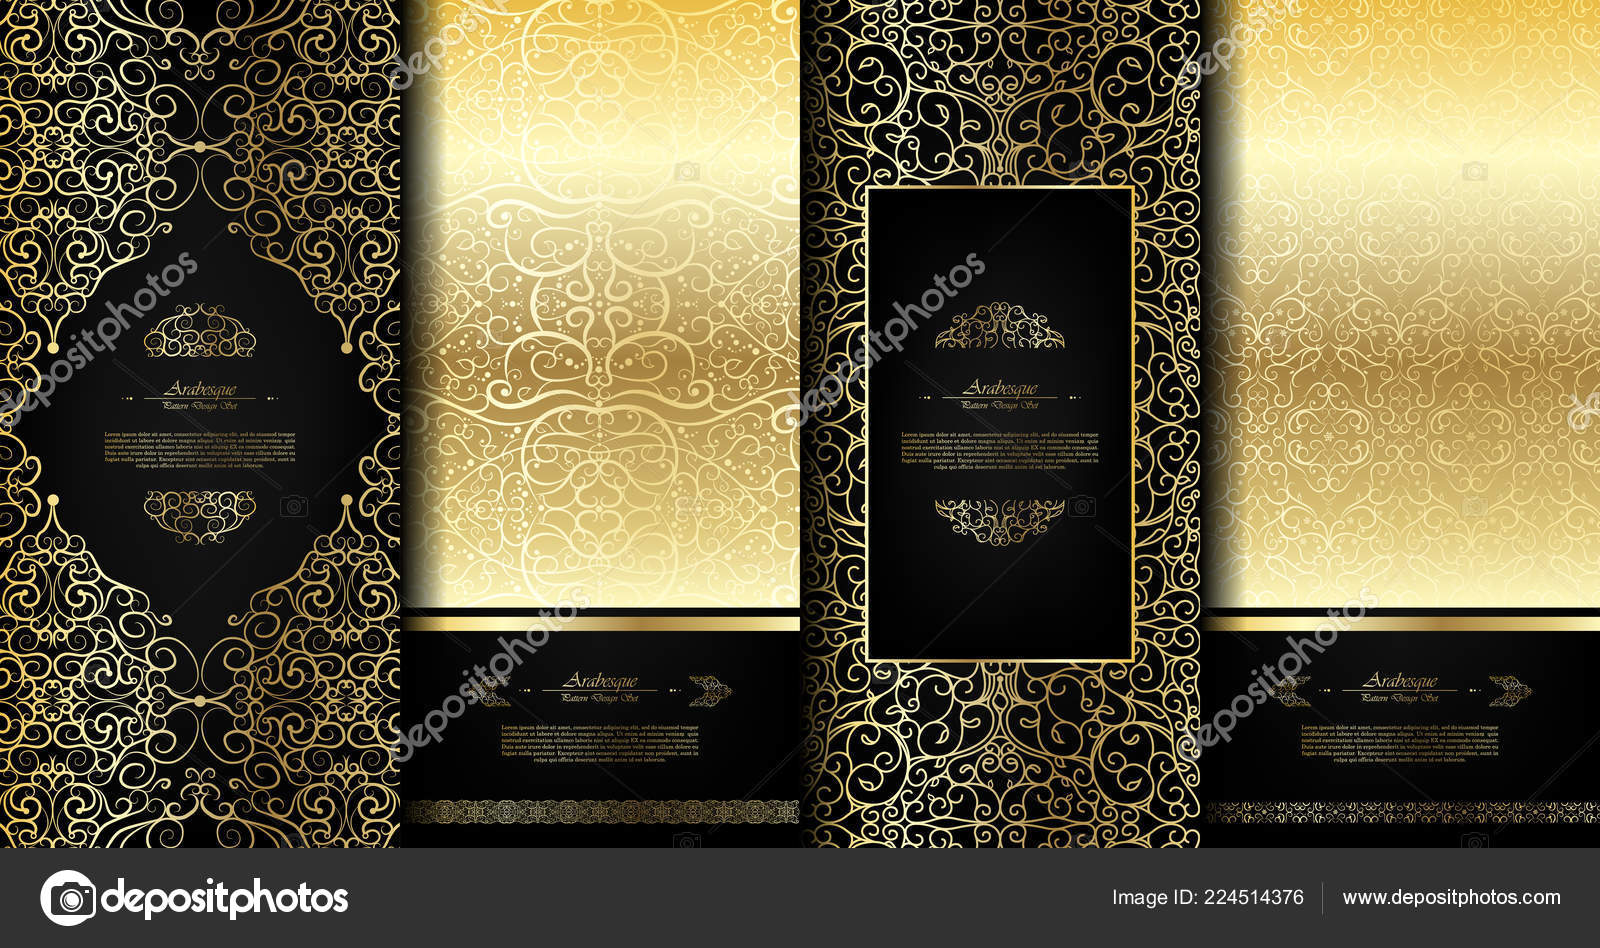 arabesque abstract eastern element classy black gold background card